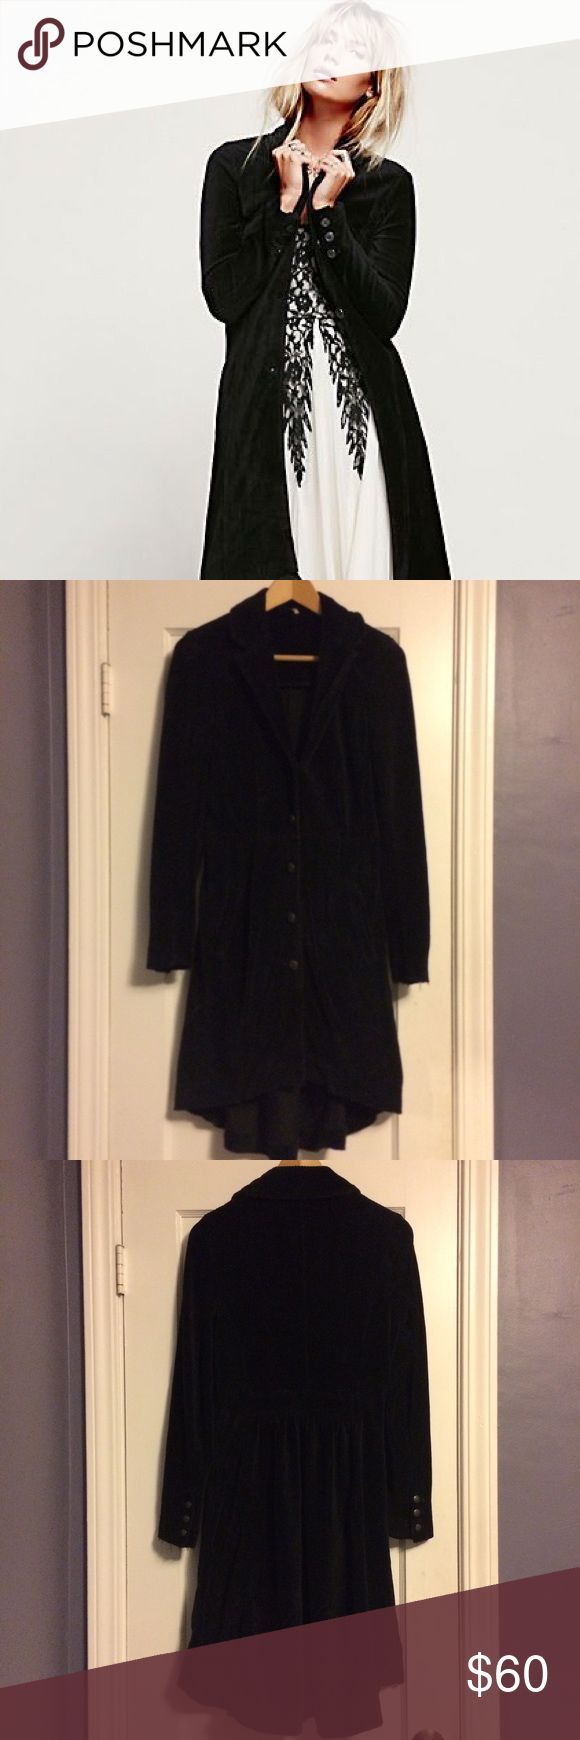 Free People Corduroy Duster Beautiful duster with Victorian flair. Free People Sweaters Cardigans